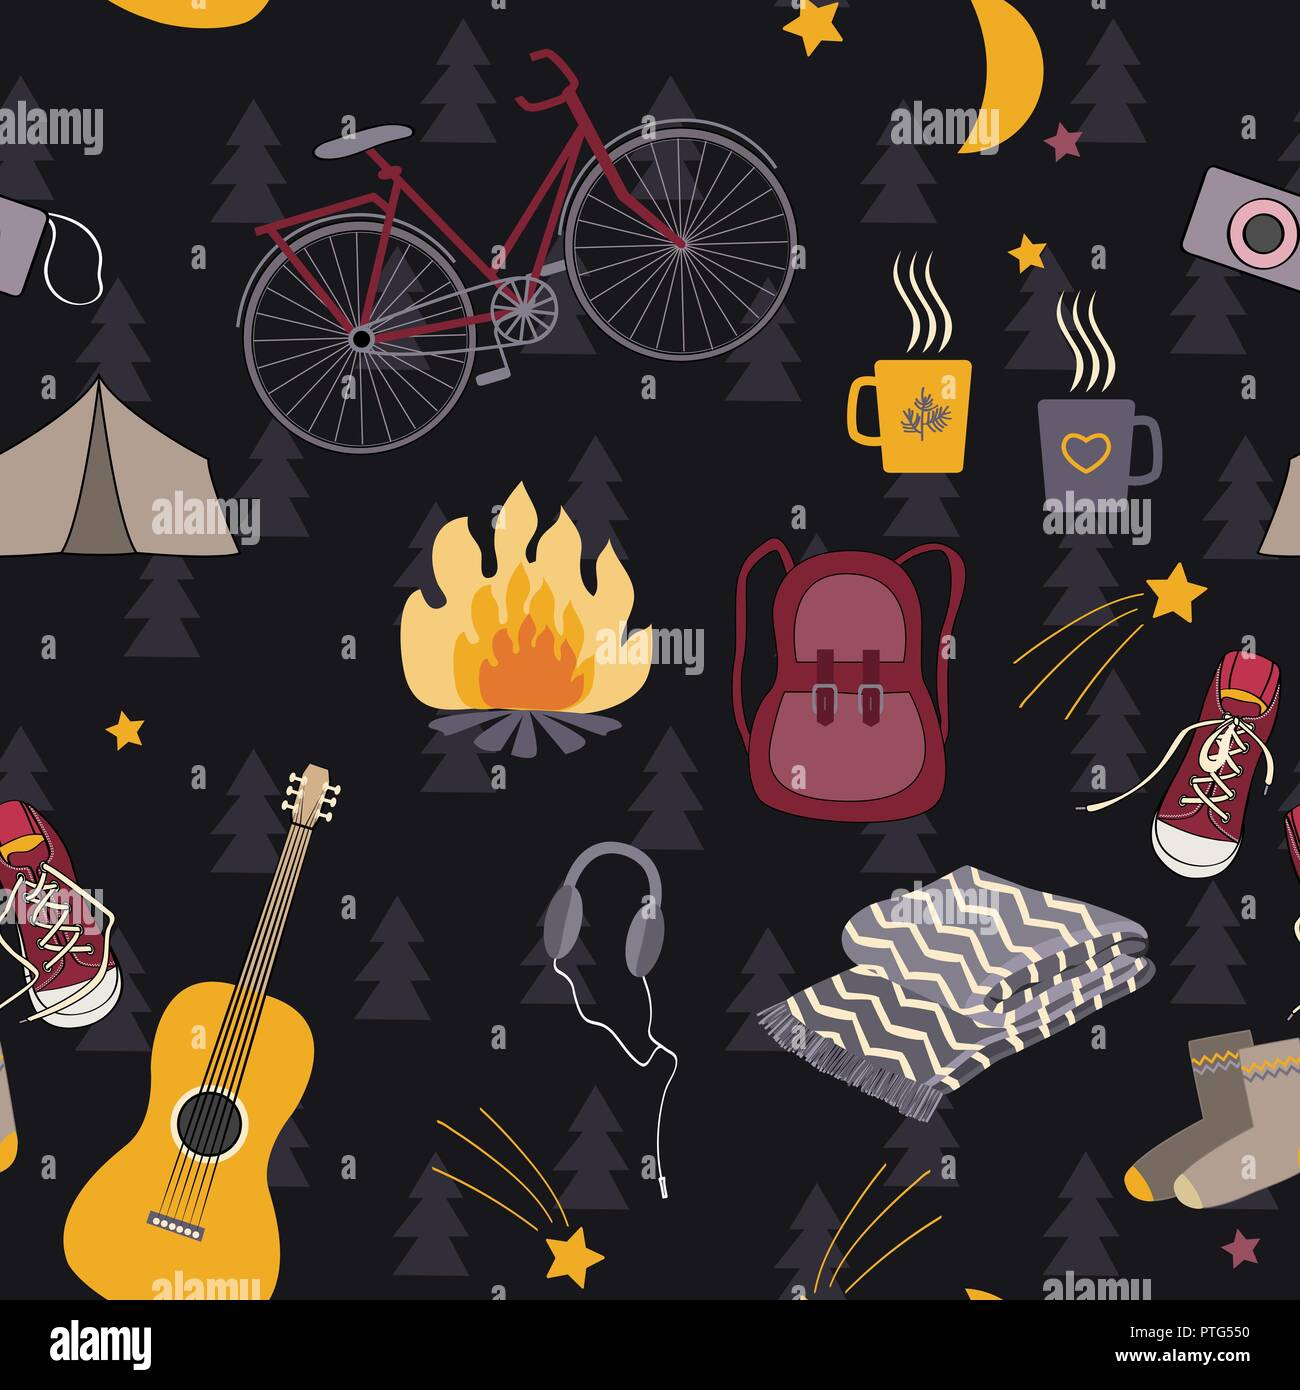 Camping seamless pattern with tourism symbols: backpack, campfire, bike, sneakers, guitar and tent. Forest floral background. Vector illustration - Stock Vector